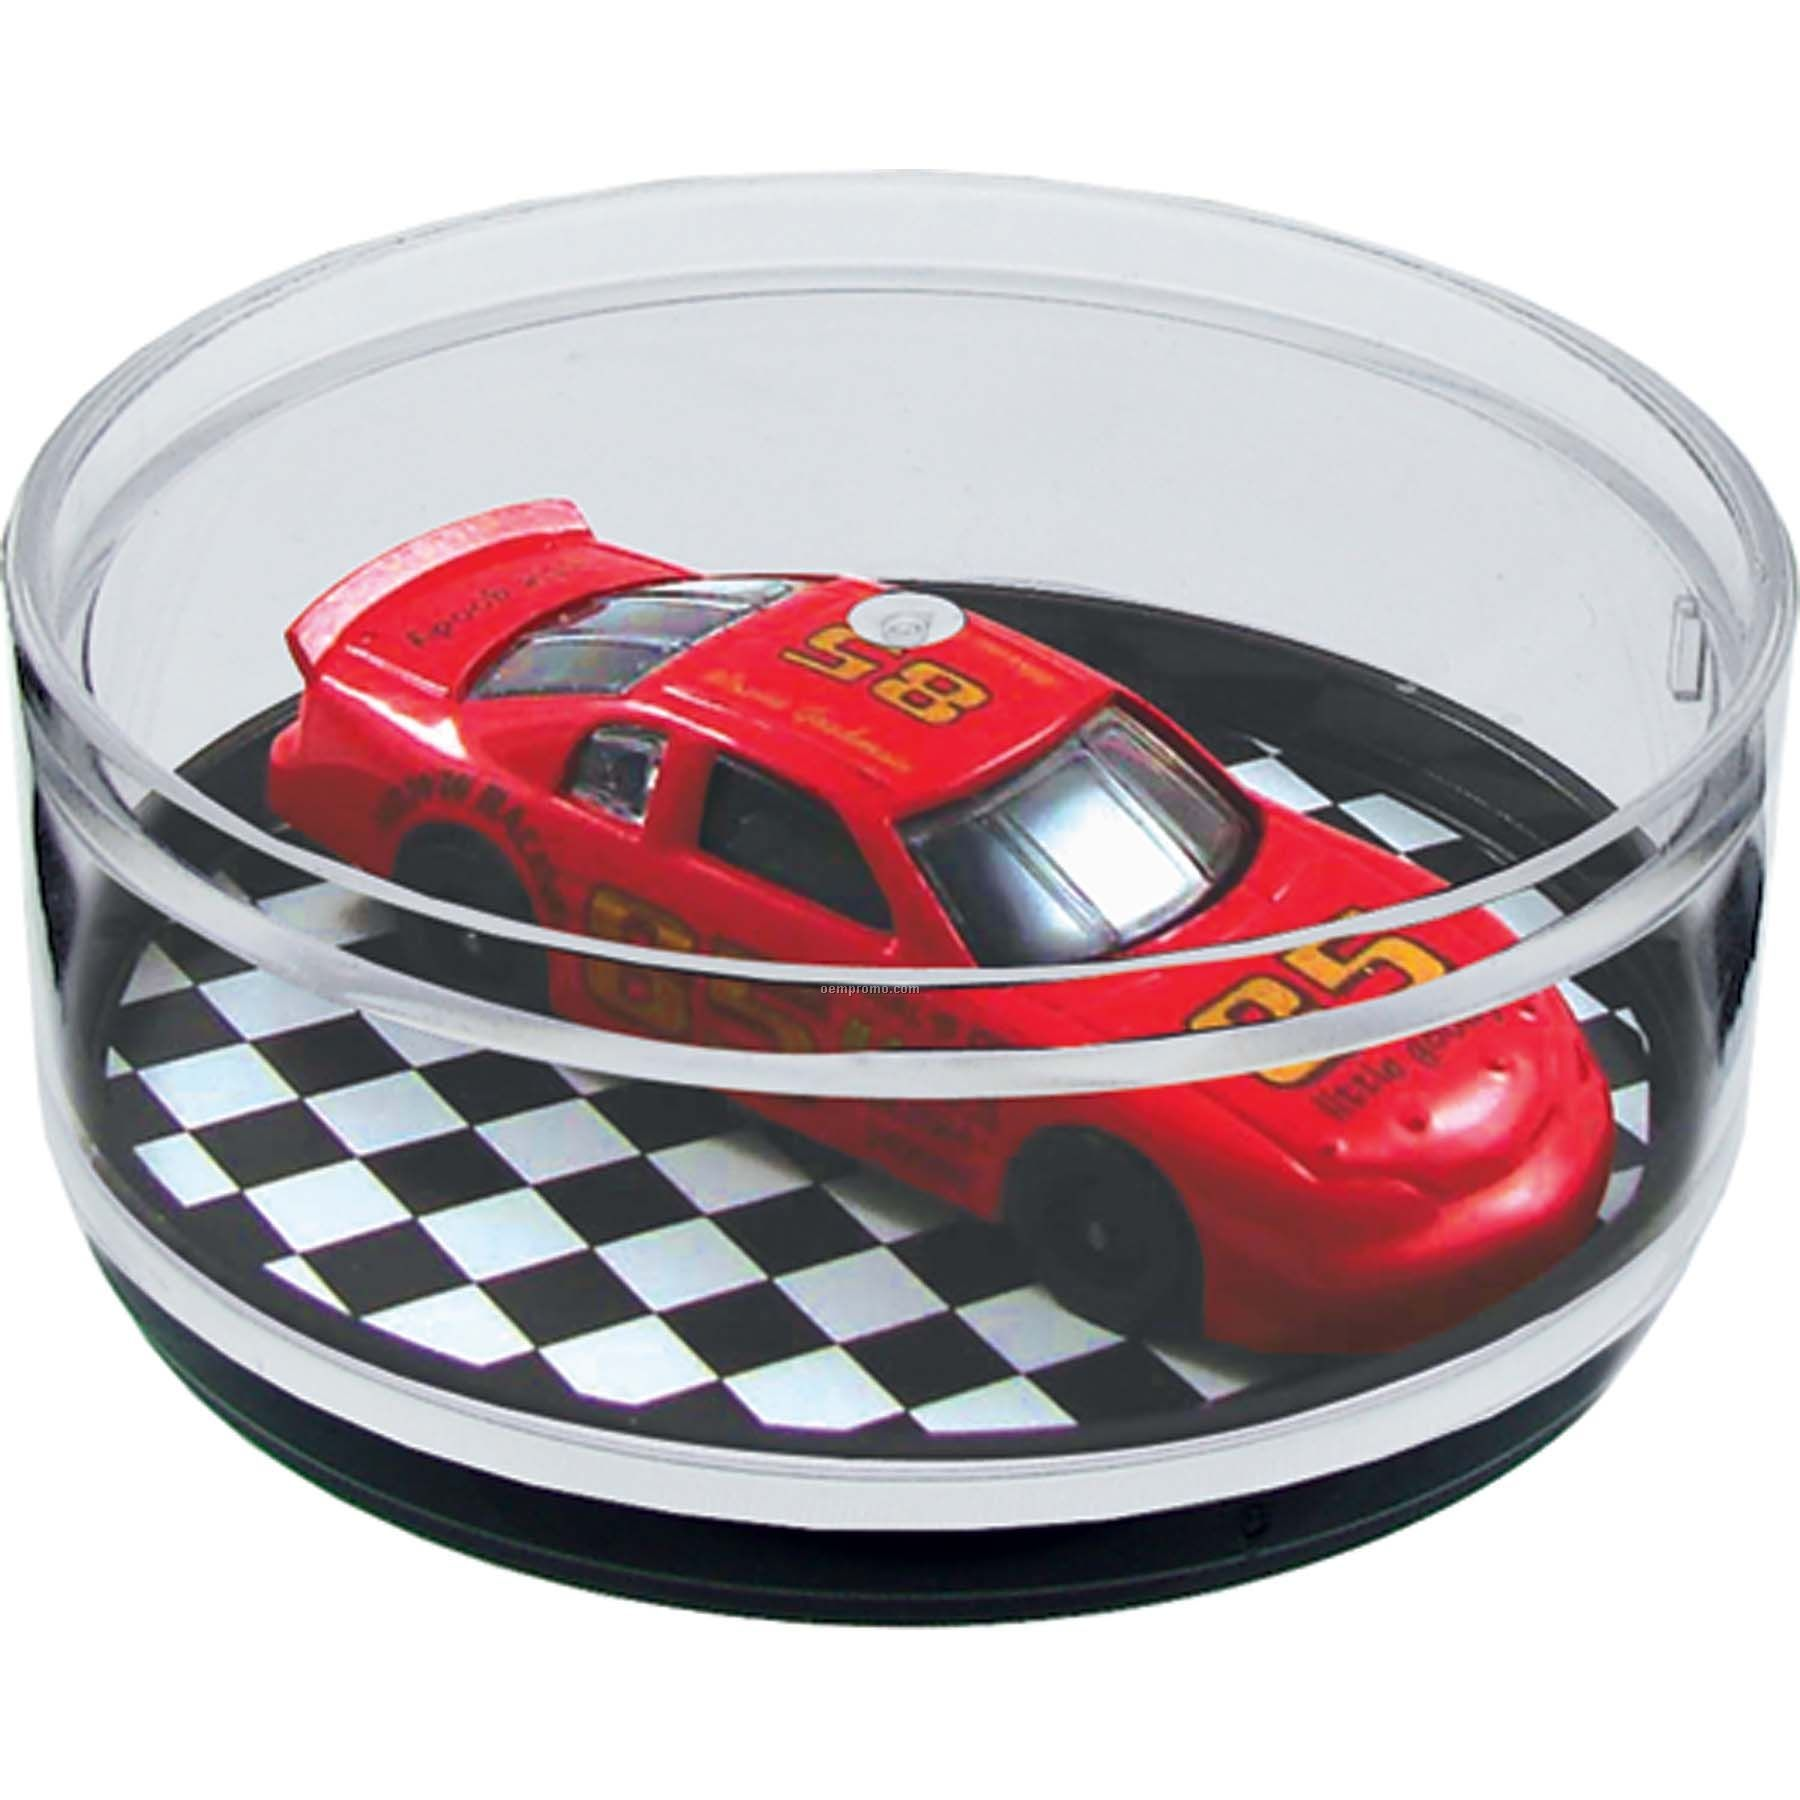 Pit Stop Compartment Coaster Caddy